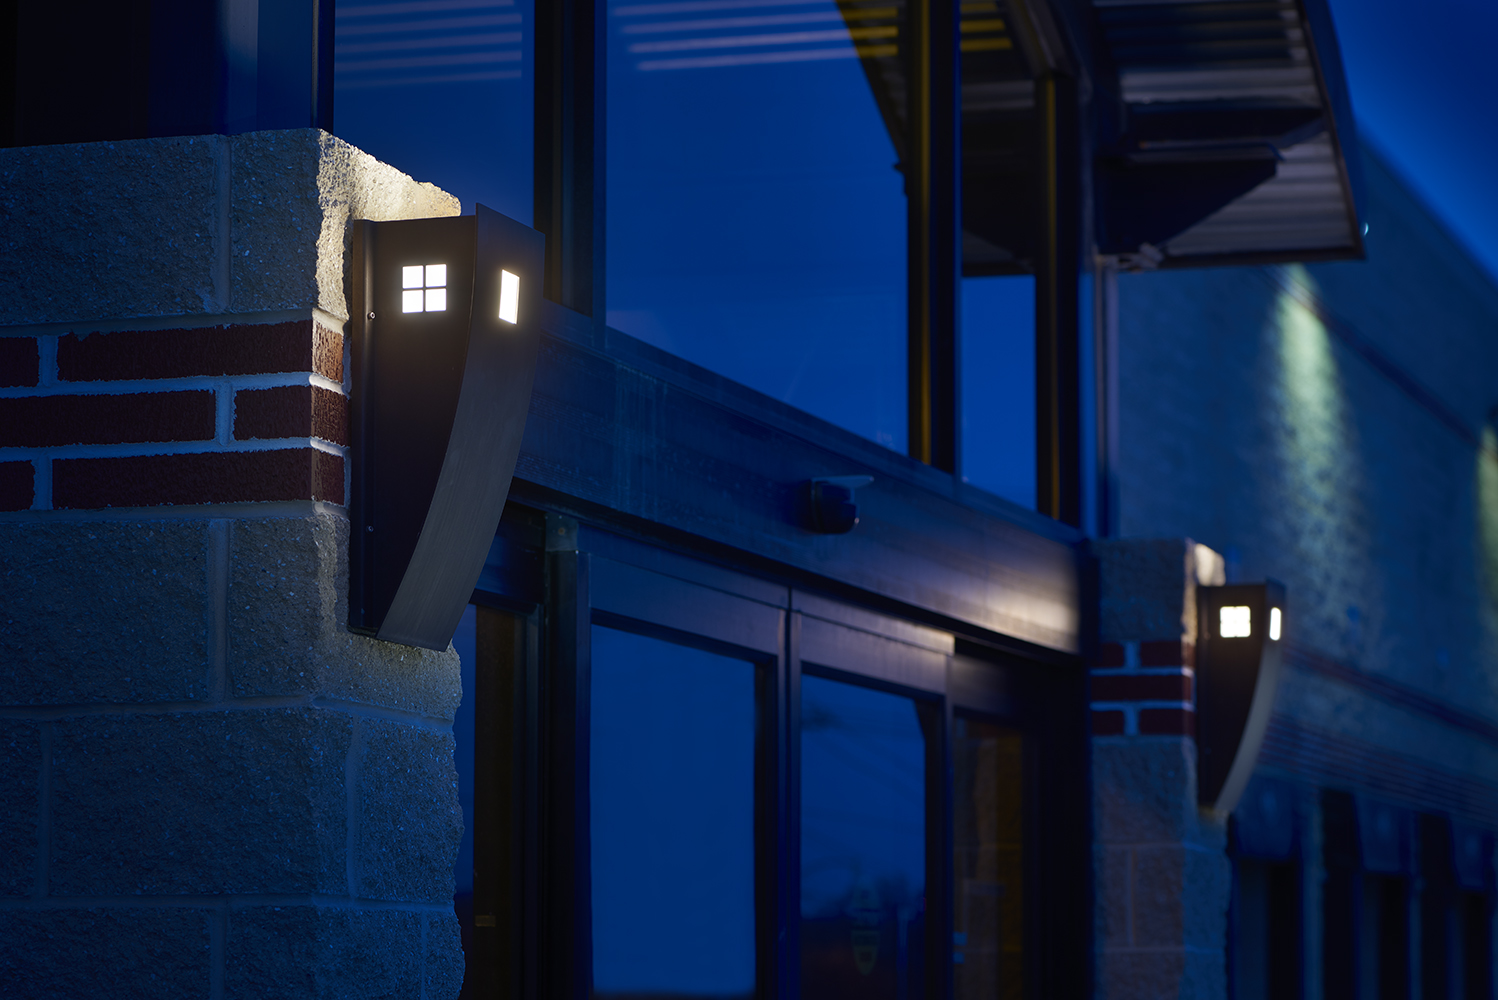 Cypress outdoor light fixture illuminates a dark exterior doorway, with small window cutouts on the side of the luminaire body.